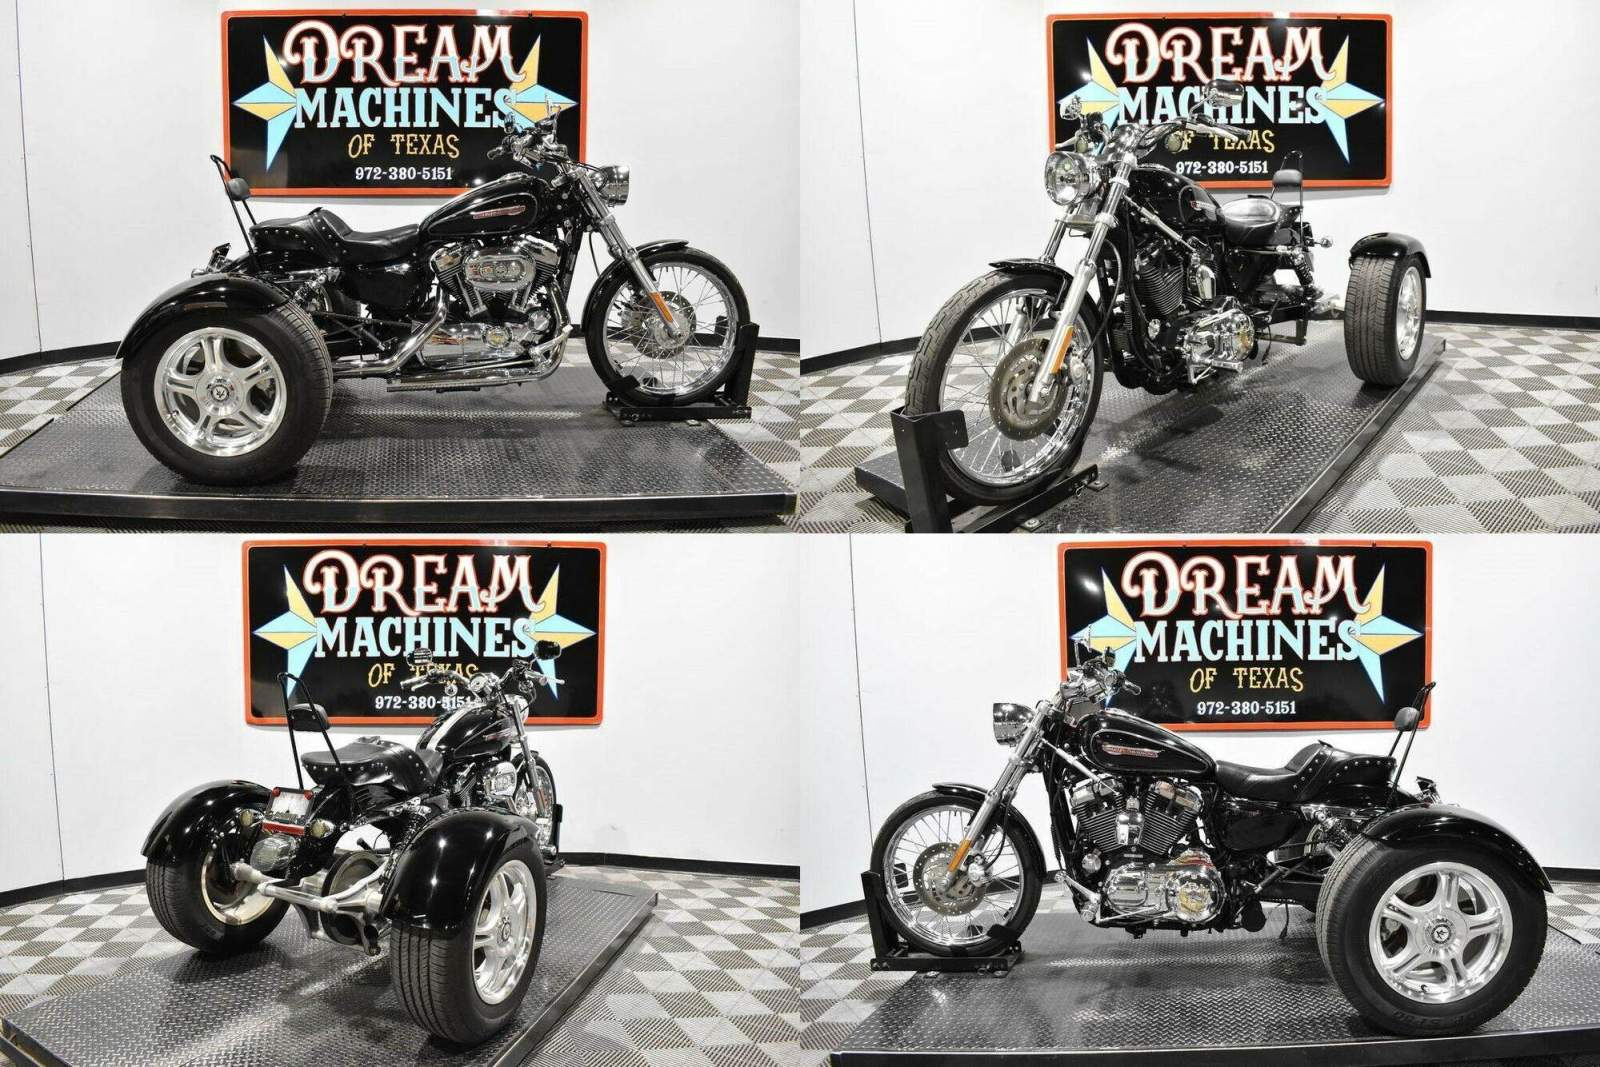 2009 Harley-Davidson XL1200C - Sportster 1200 Custom Trike Black used for sale